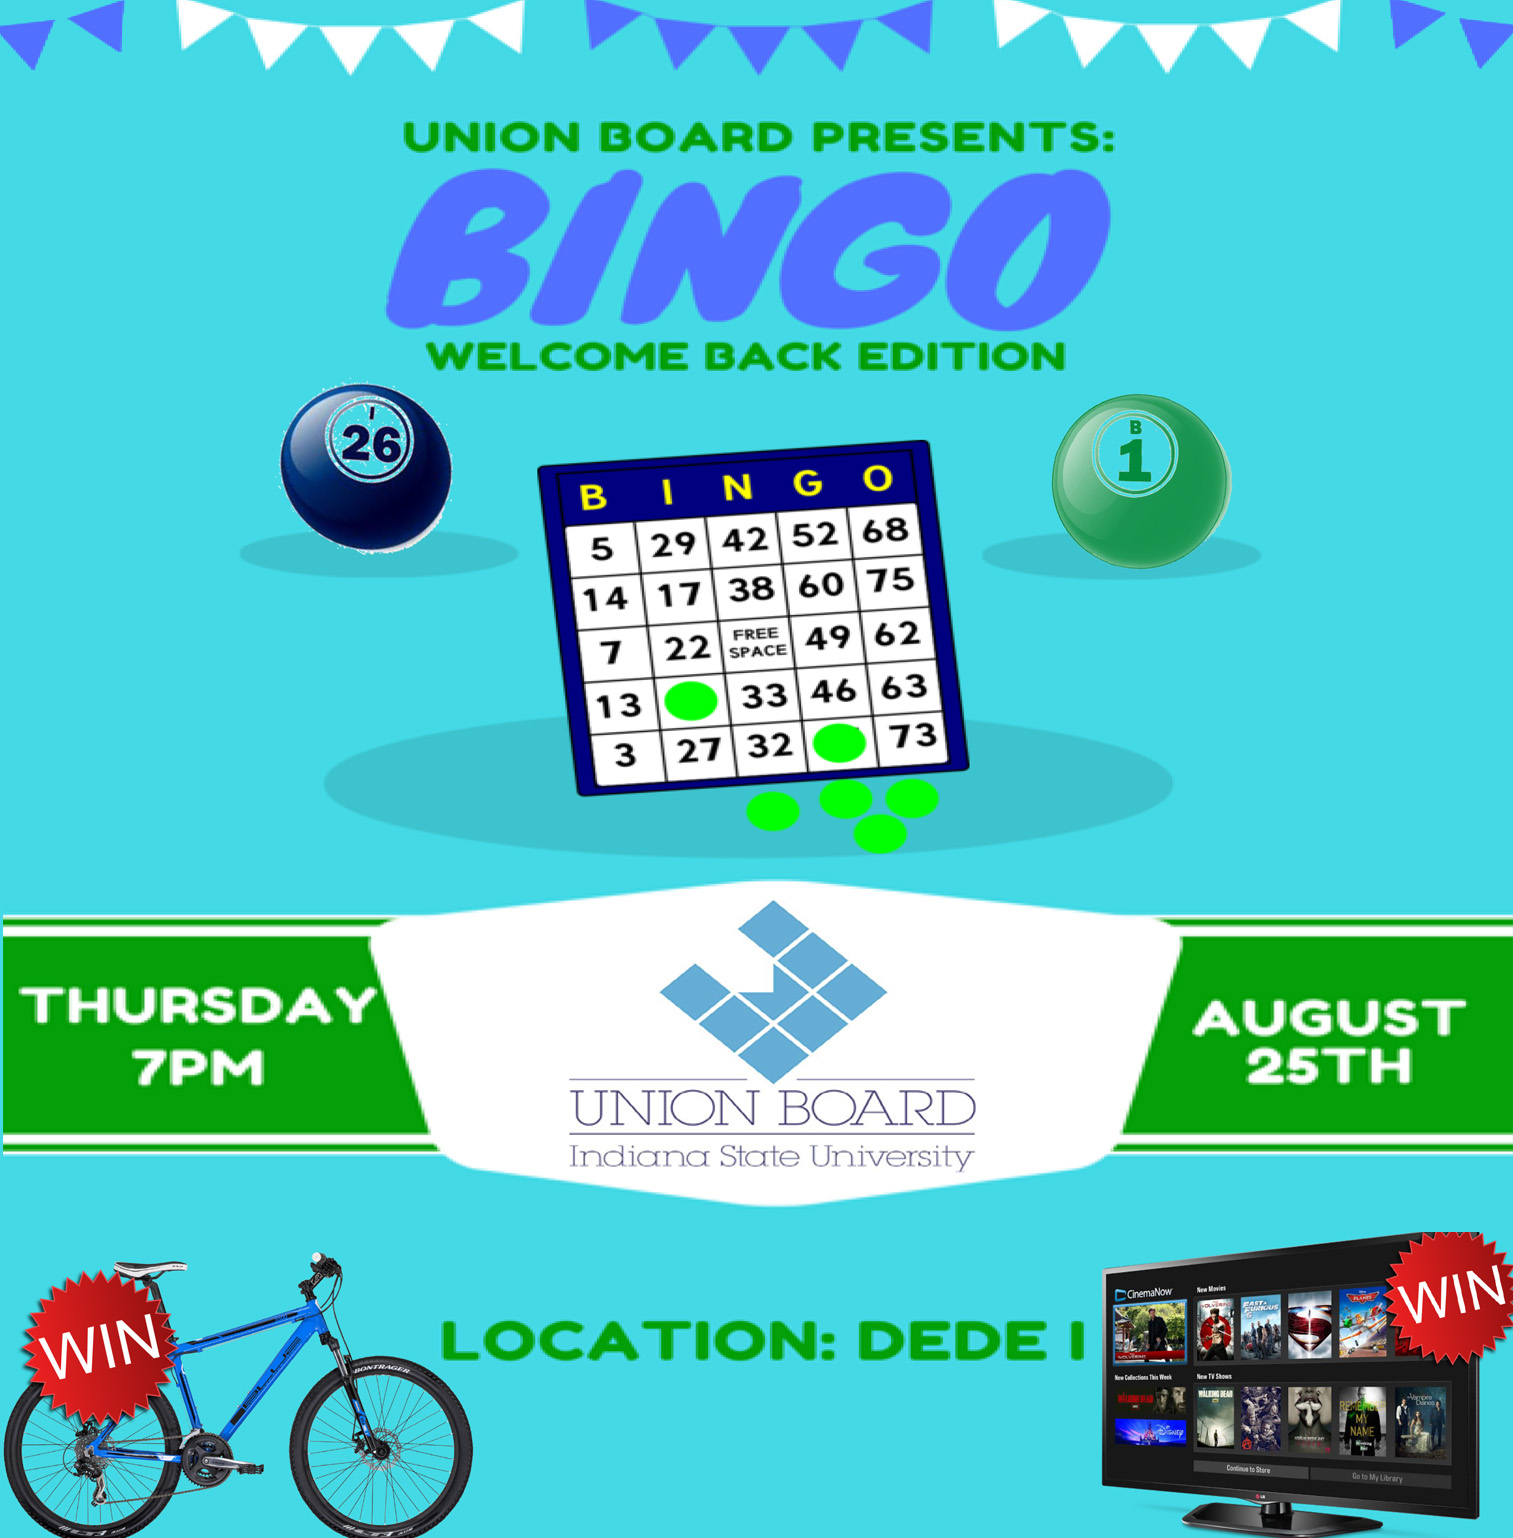 Welcome Back Bingo sponsored by Union Board